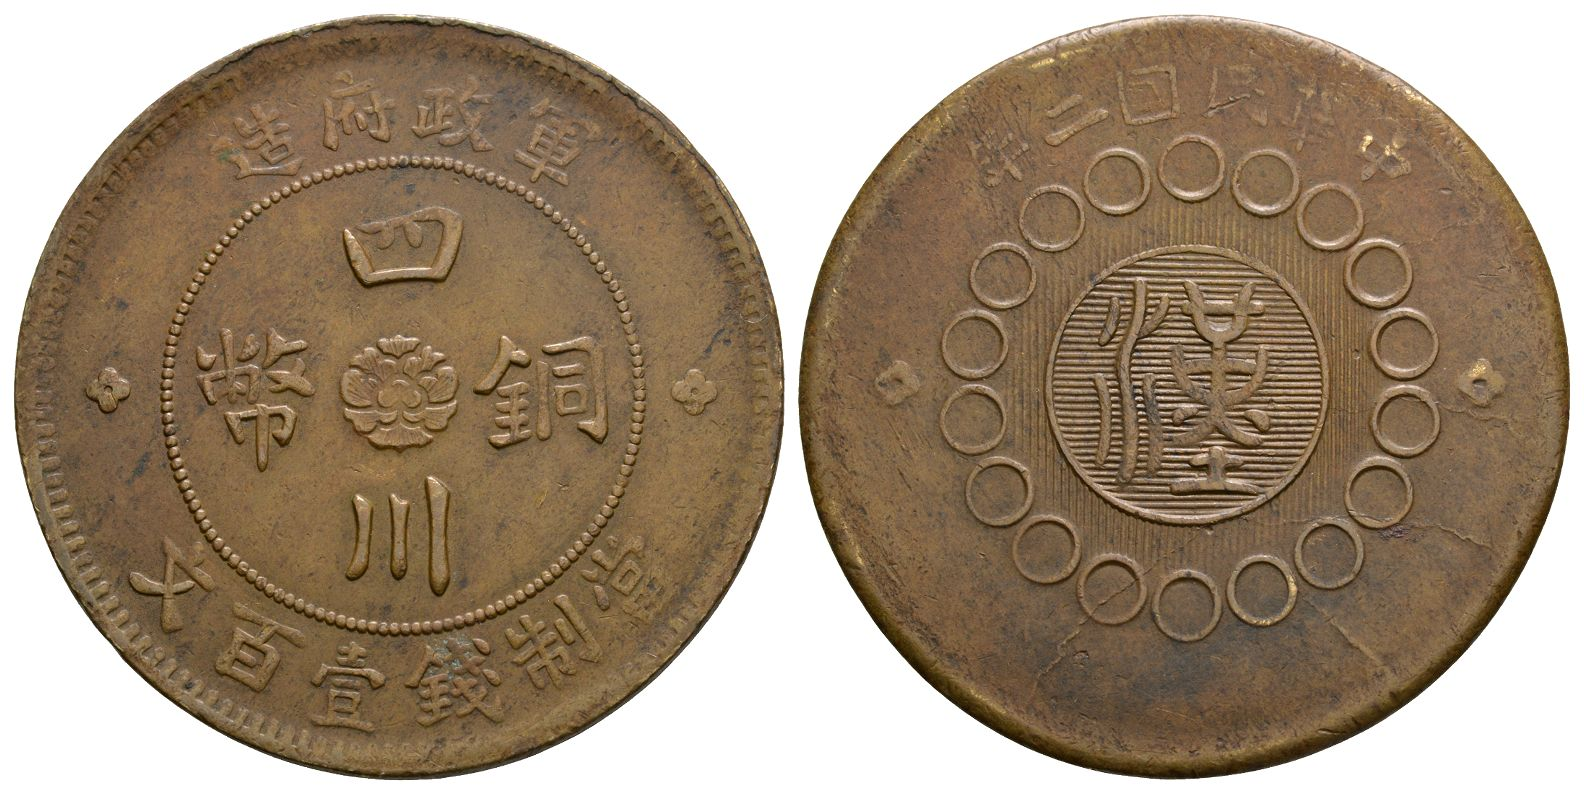 World Coins - China - 1913 - 100 Cash